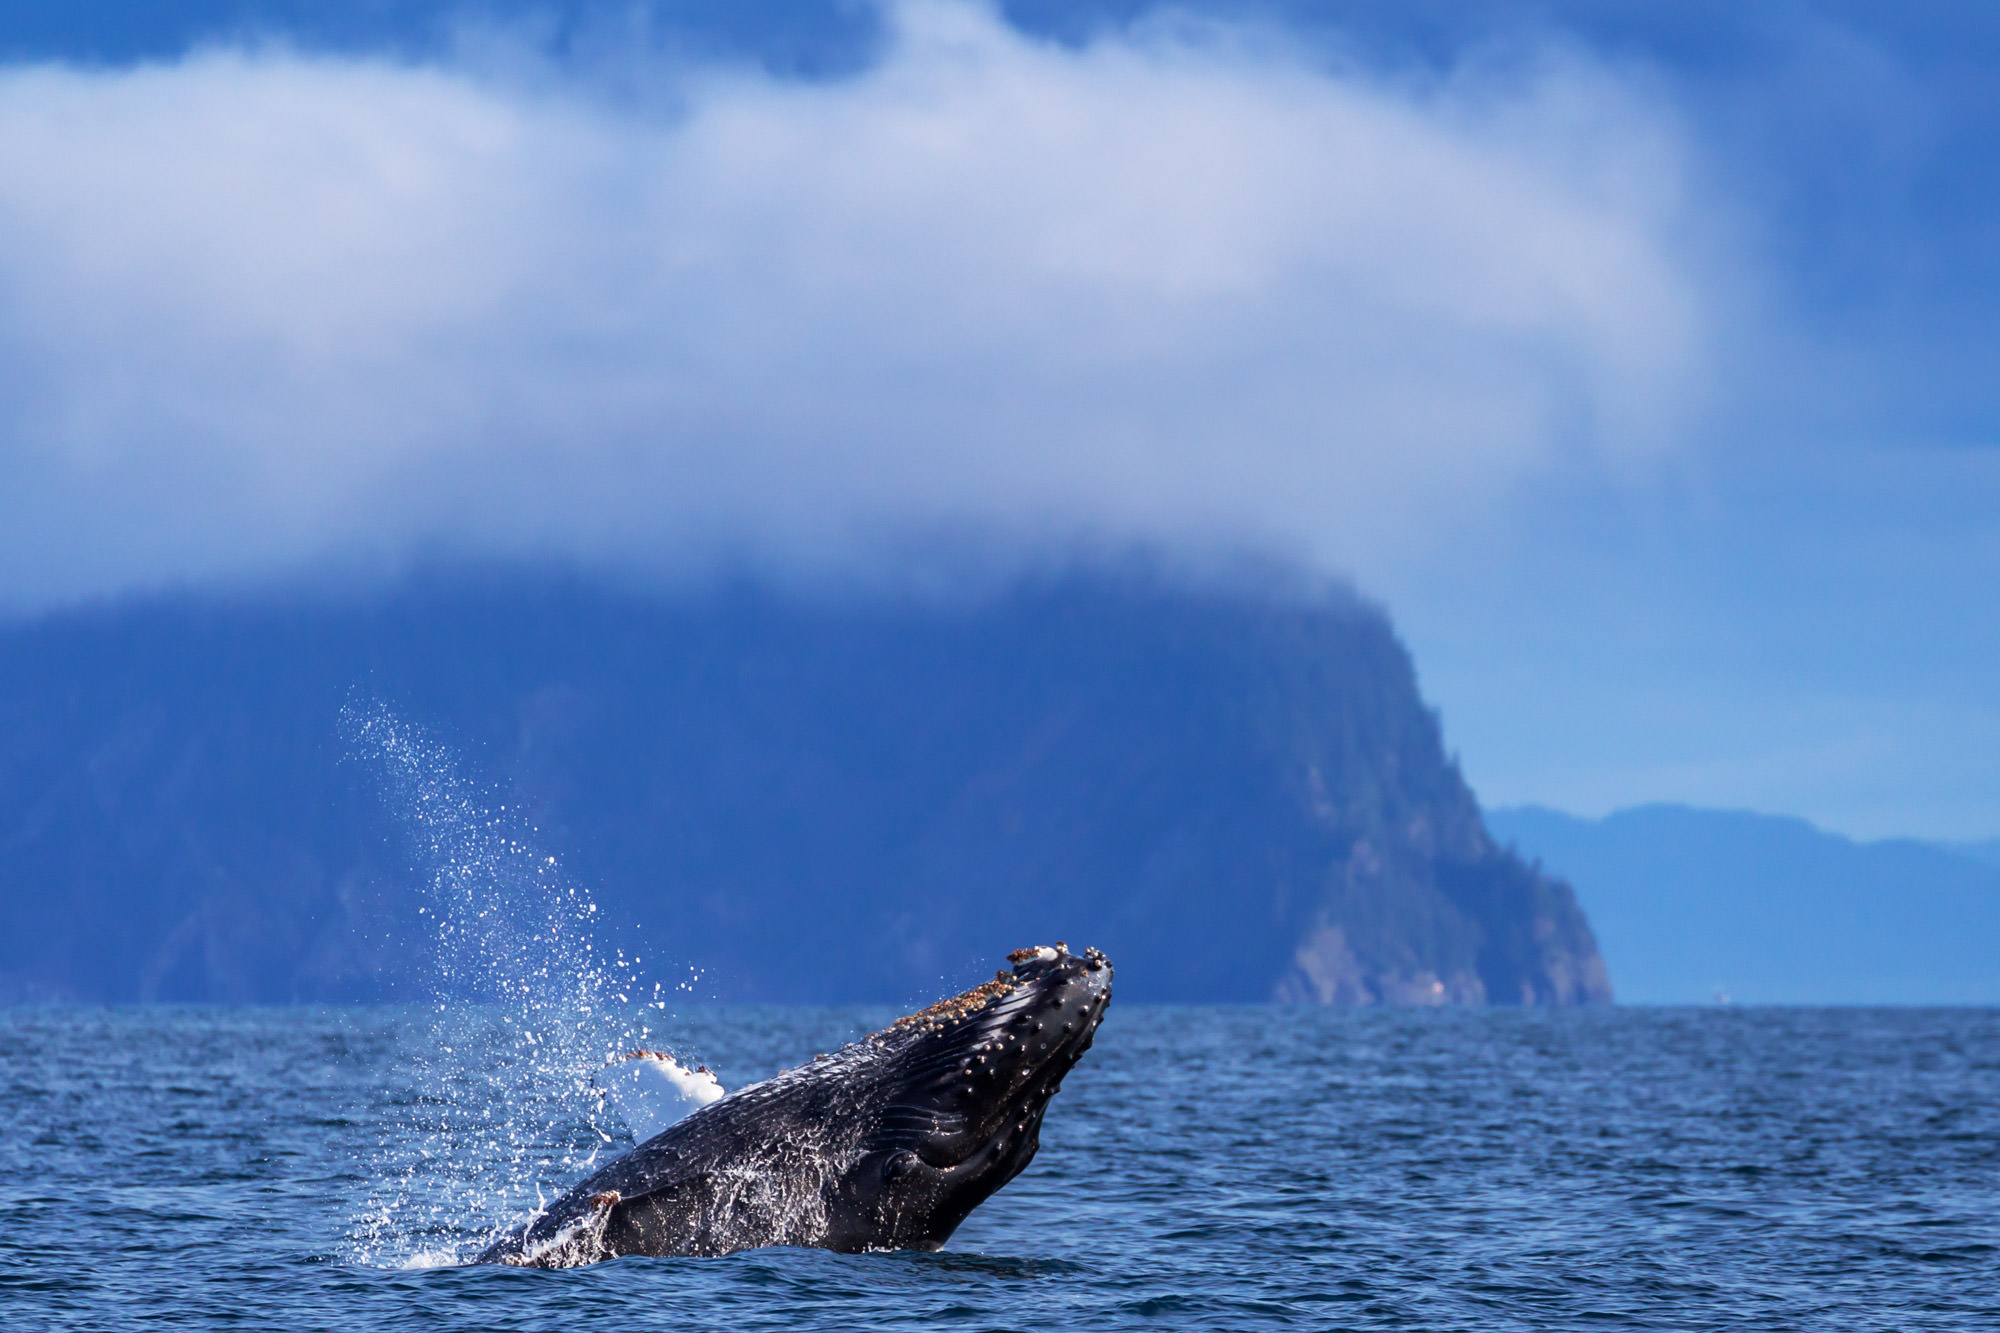 Whale, Humpback Whale, Alaska, Resurrection Bay, limited edition, photograph, fine art, wildlife, photo